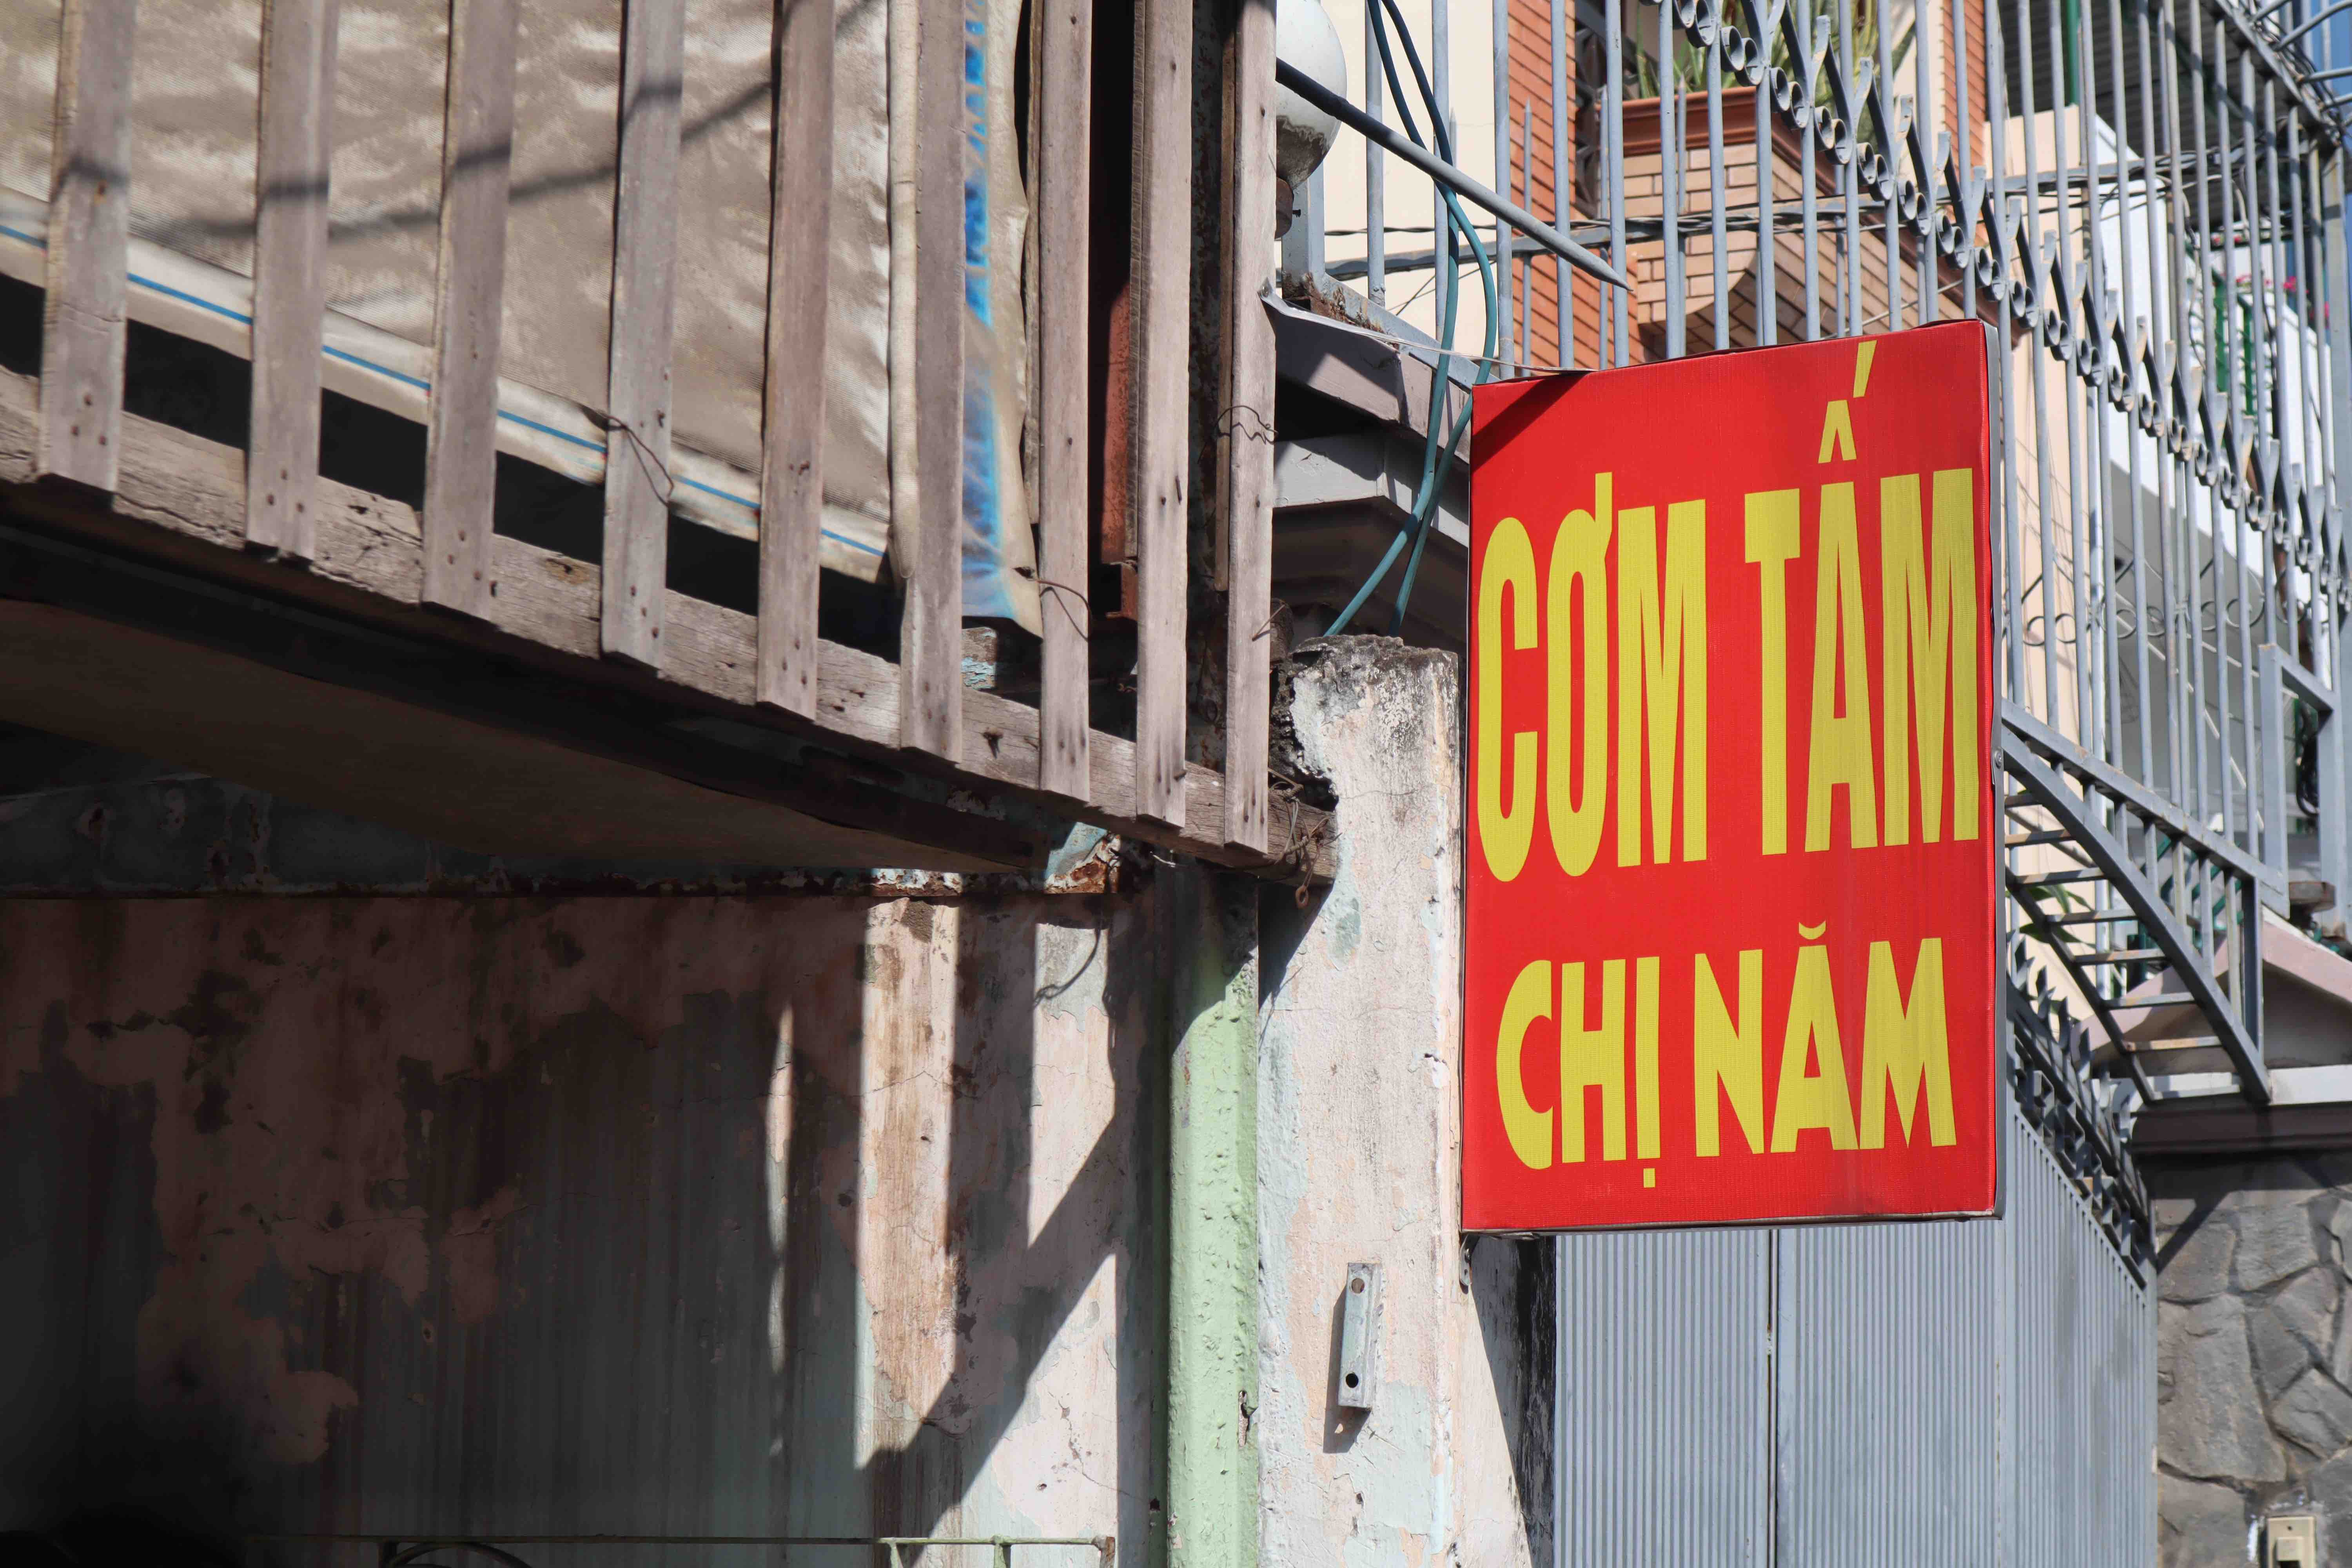 The Com Tam Chi Nam signboard at Tan Canh Street, Tan Binh District, Ho Chi Minh City, is seen in the photo. Photo: Nam Vuong / Tuoi Tre